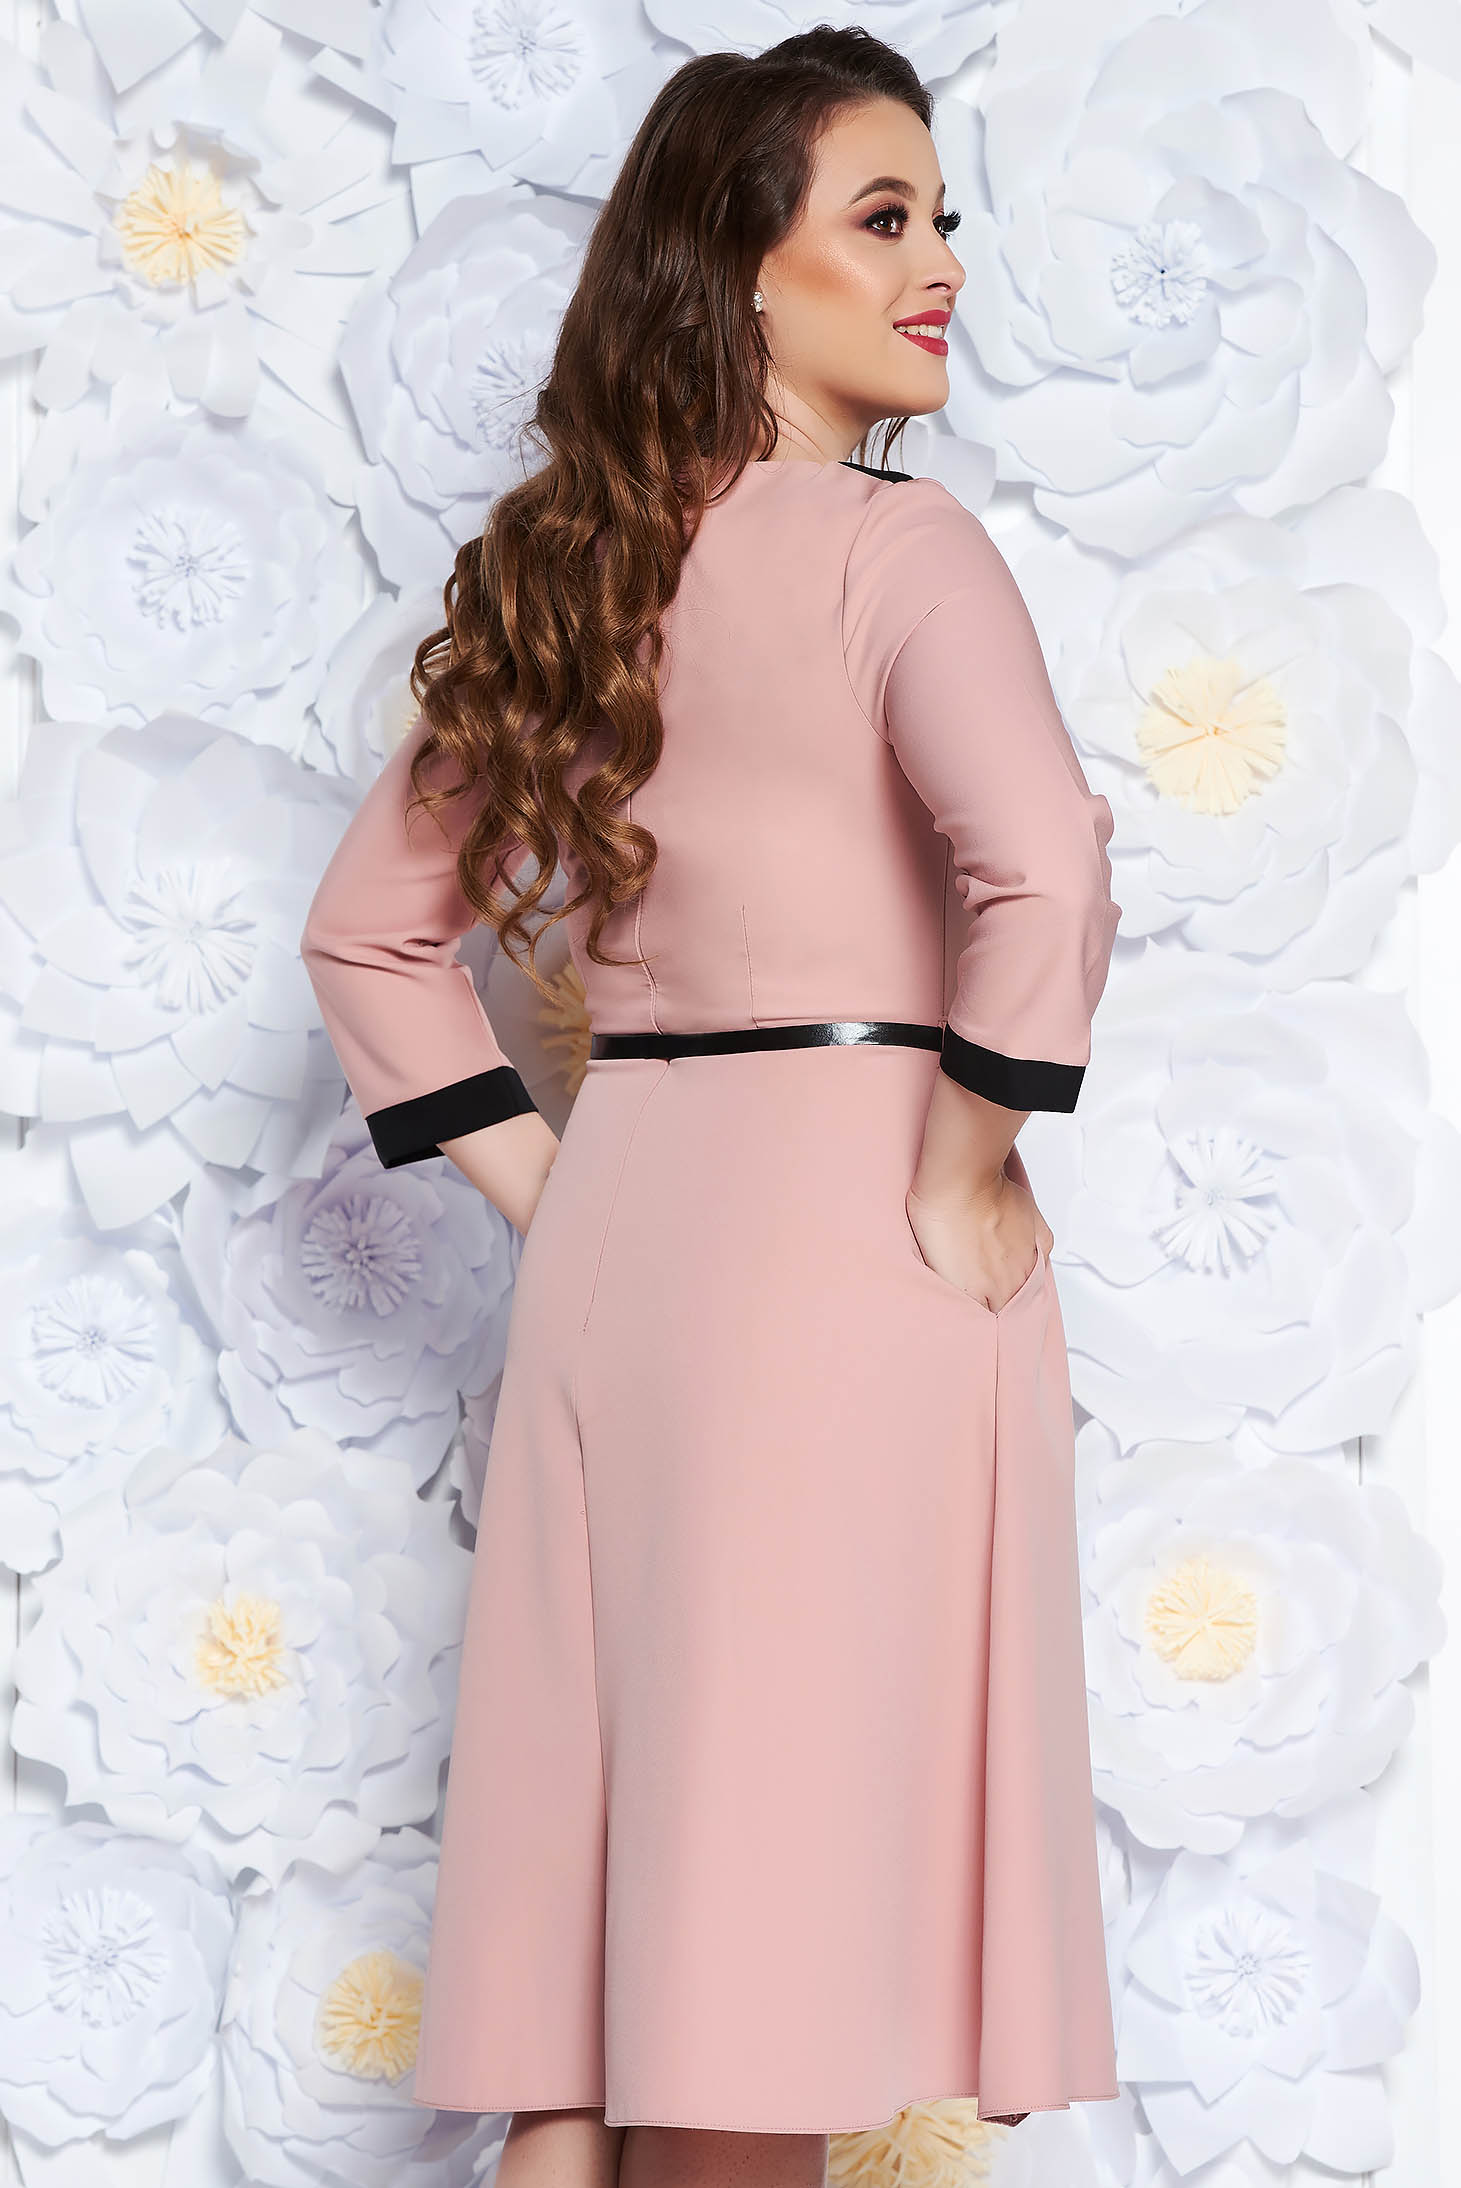 Rosa elegant cloche dress slightly elastic fabric accessorized with belt